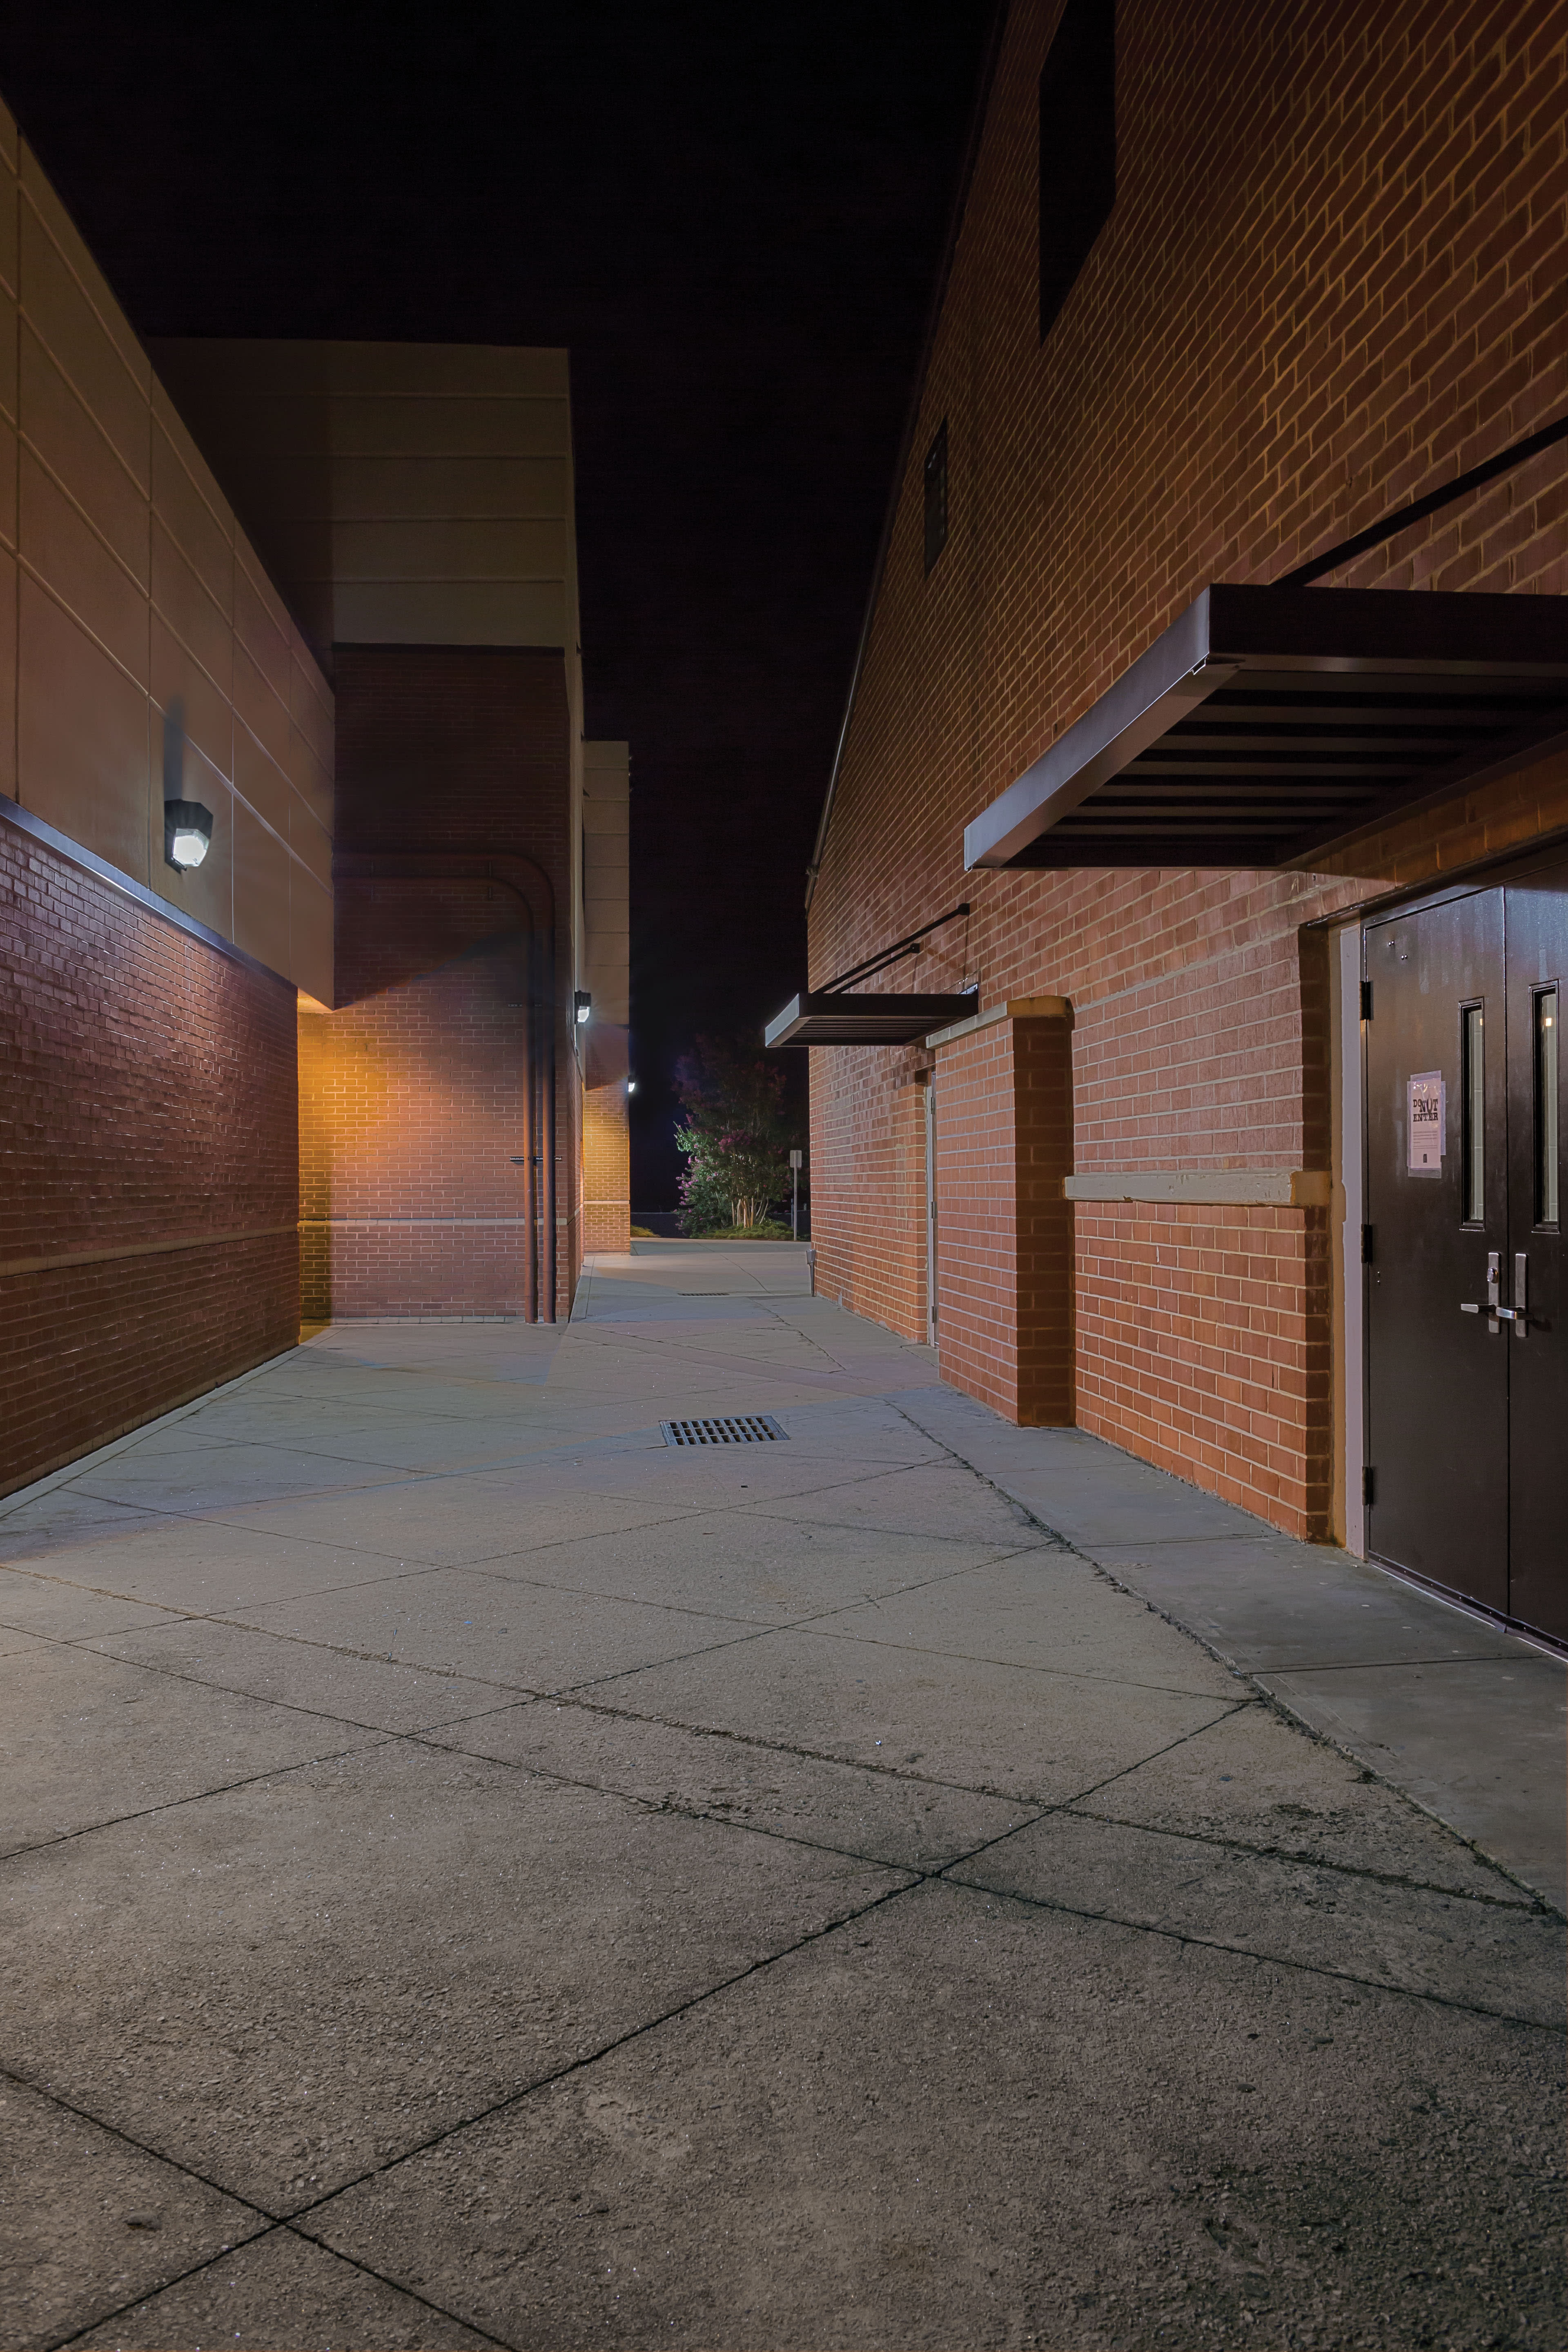 Lithonia Lighting Twp Led 30c 50k Dark Black Bronze 5000k 16 1 8 Wide Integrated Commercial Wall Pack With Clear Synthetic Shade